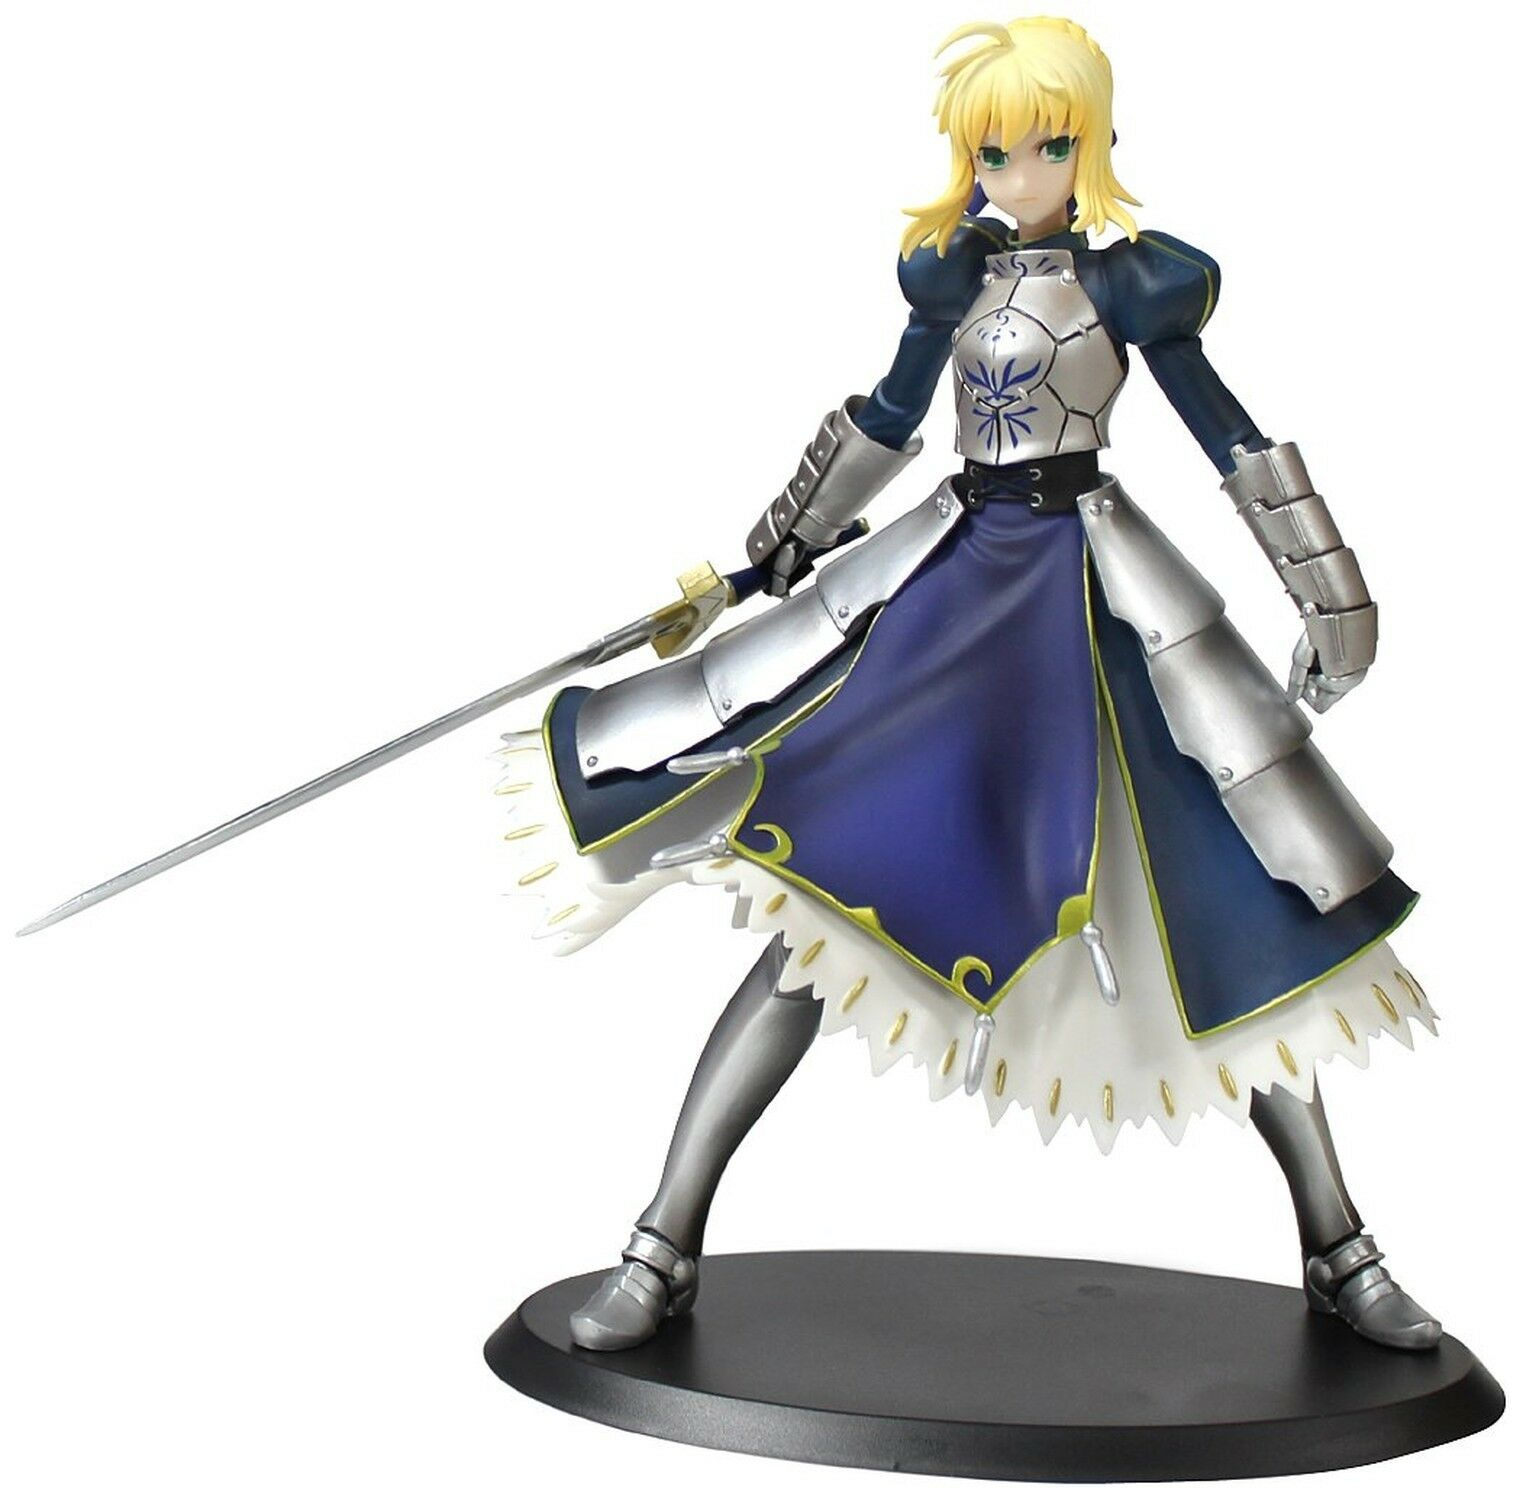 Saber, Unlimited Blade Works, SQ Figure, Fate / Stay Night, Banpresto